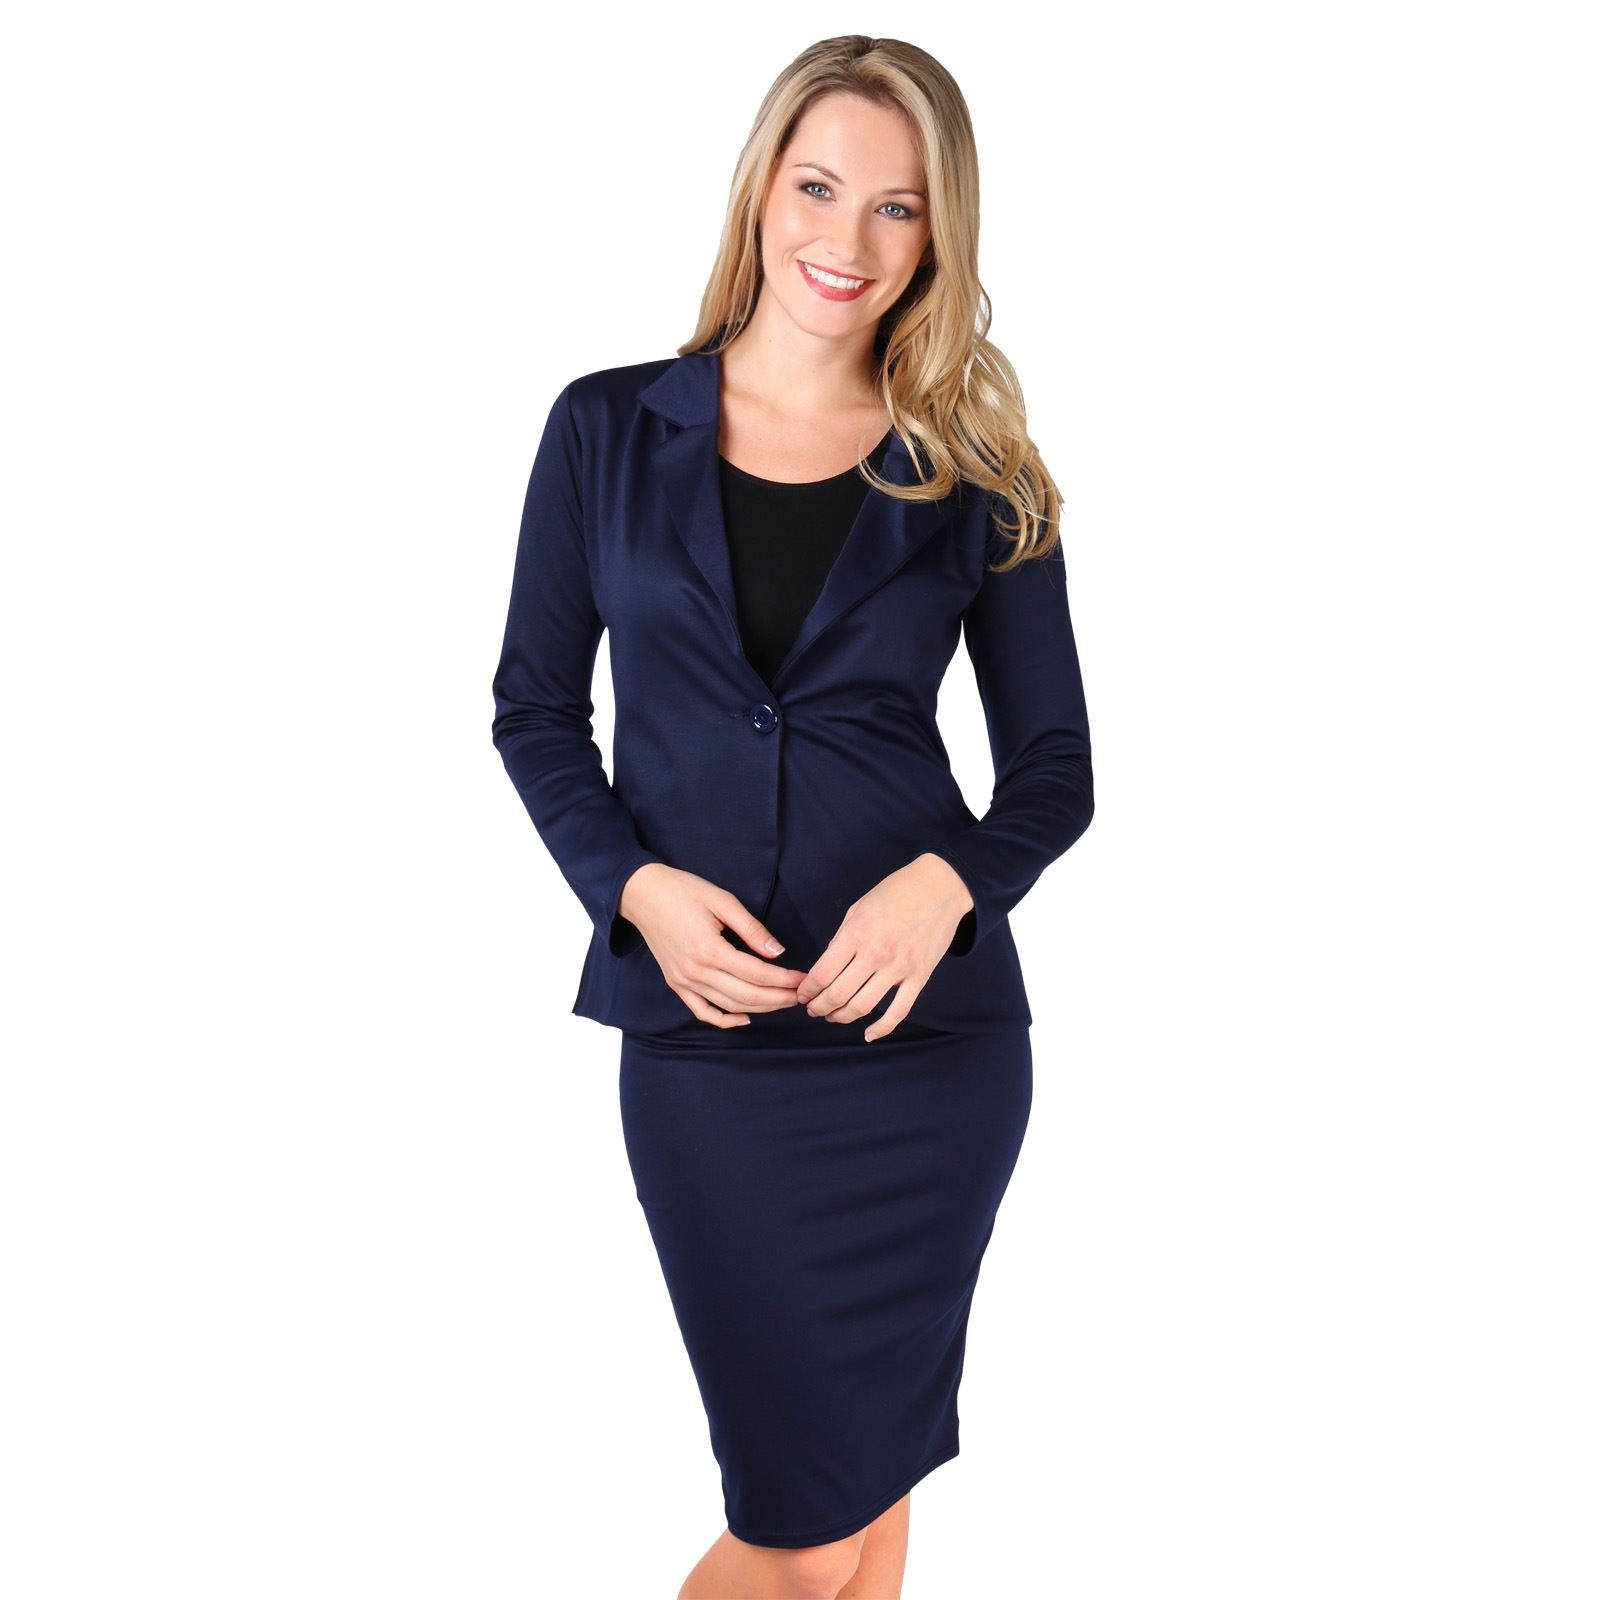 Womens Workwear Amp up your office wardrobe with our gorgeous range of stylish women's workwear. Our huge selection of skirt and trouser suits, formal dresses and jackets will ensure you're always dressed to impress.